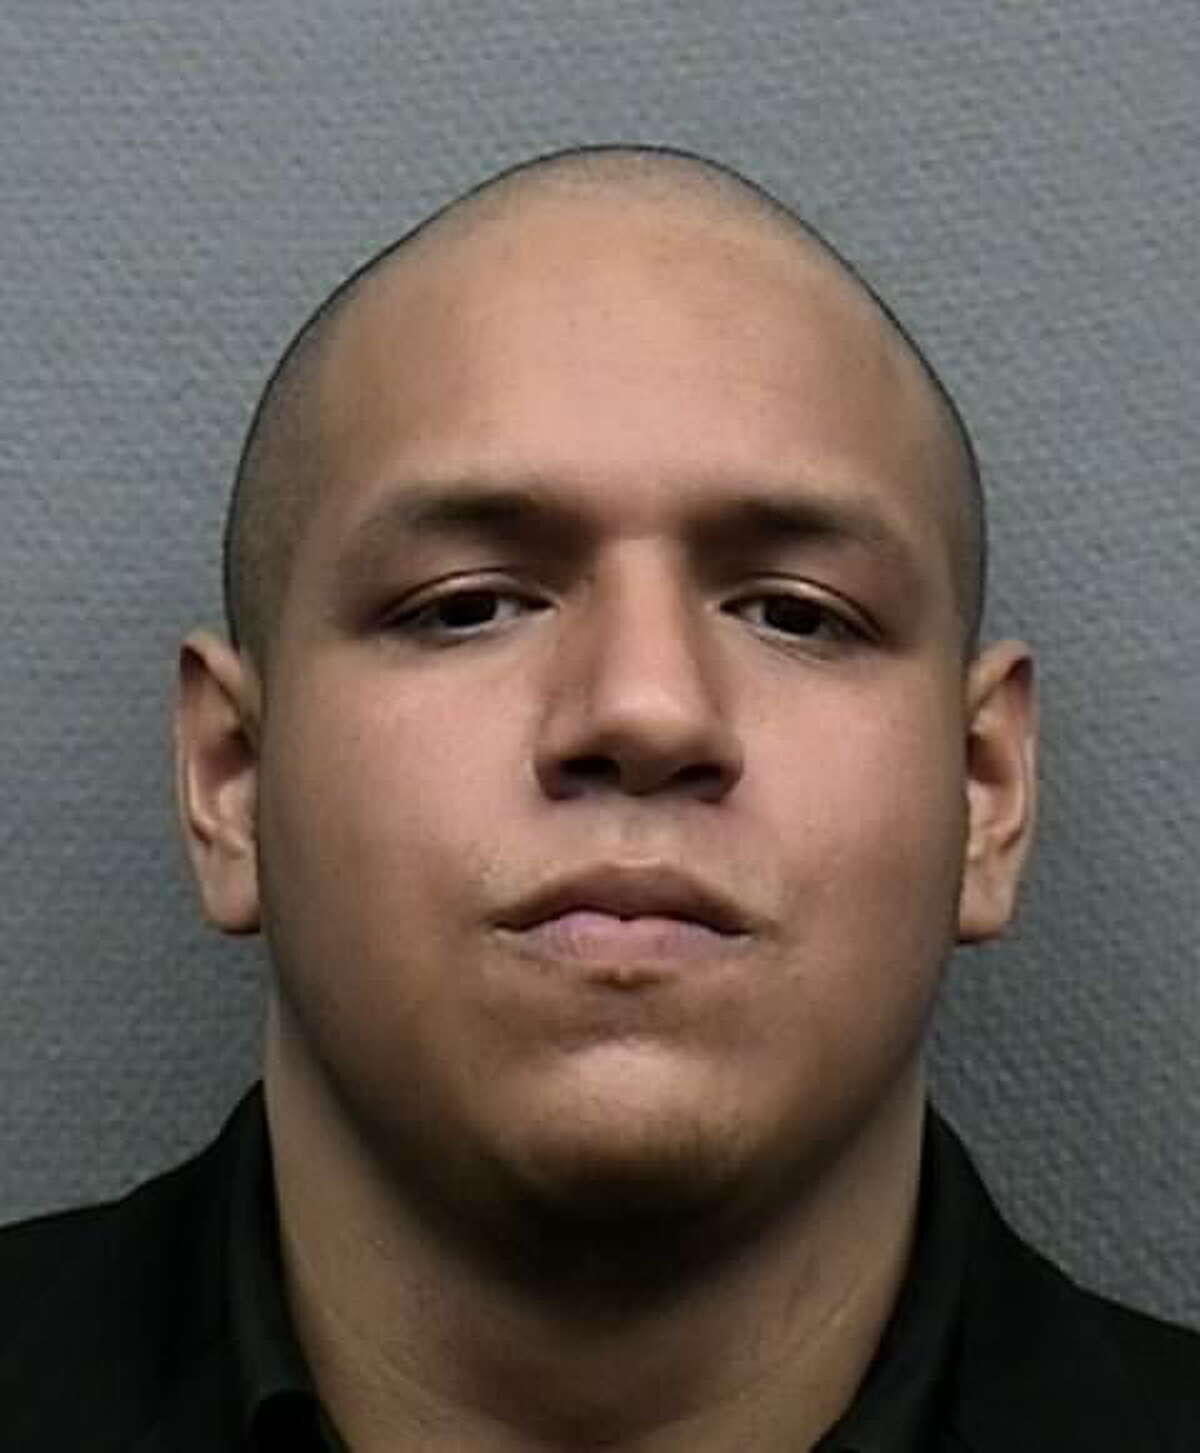 Alan Vargas, 24, was arrested by the Houston Police Department following a two month-long prostitution sting in southeast Houston.